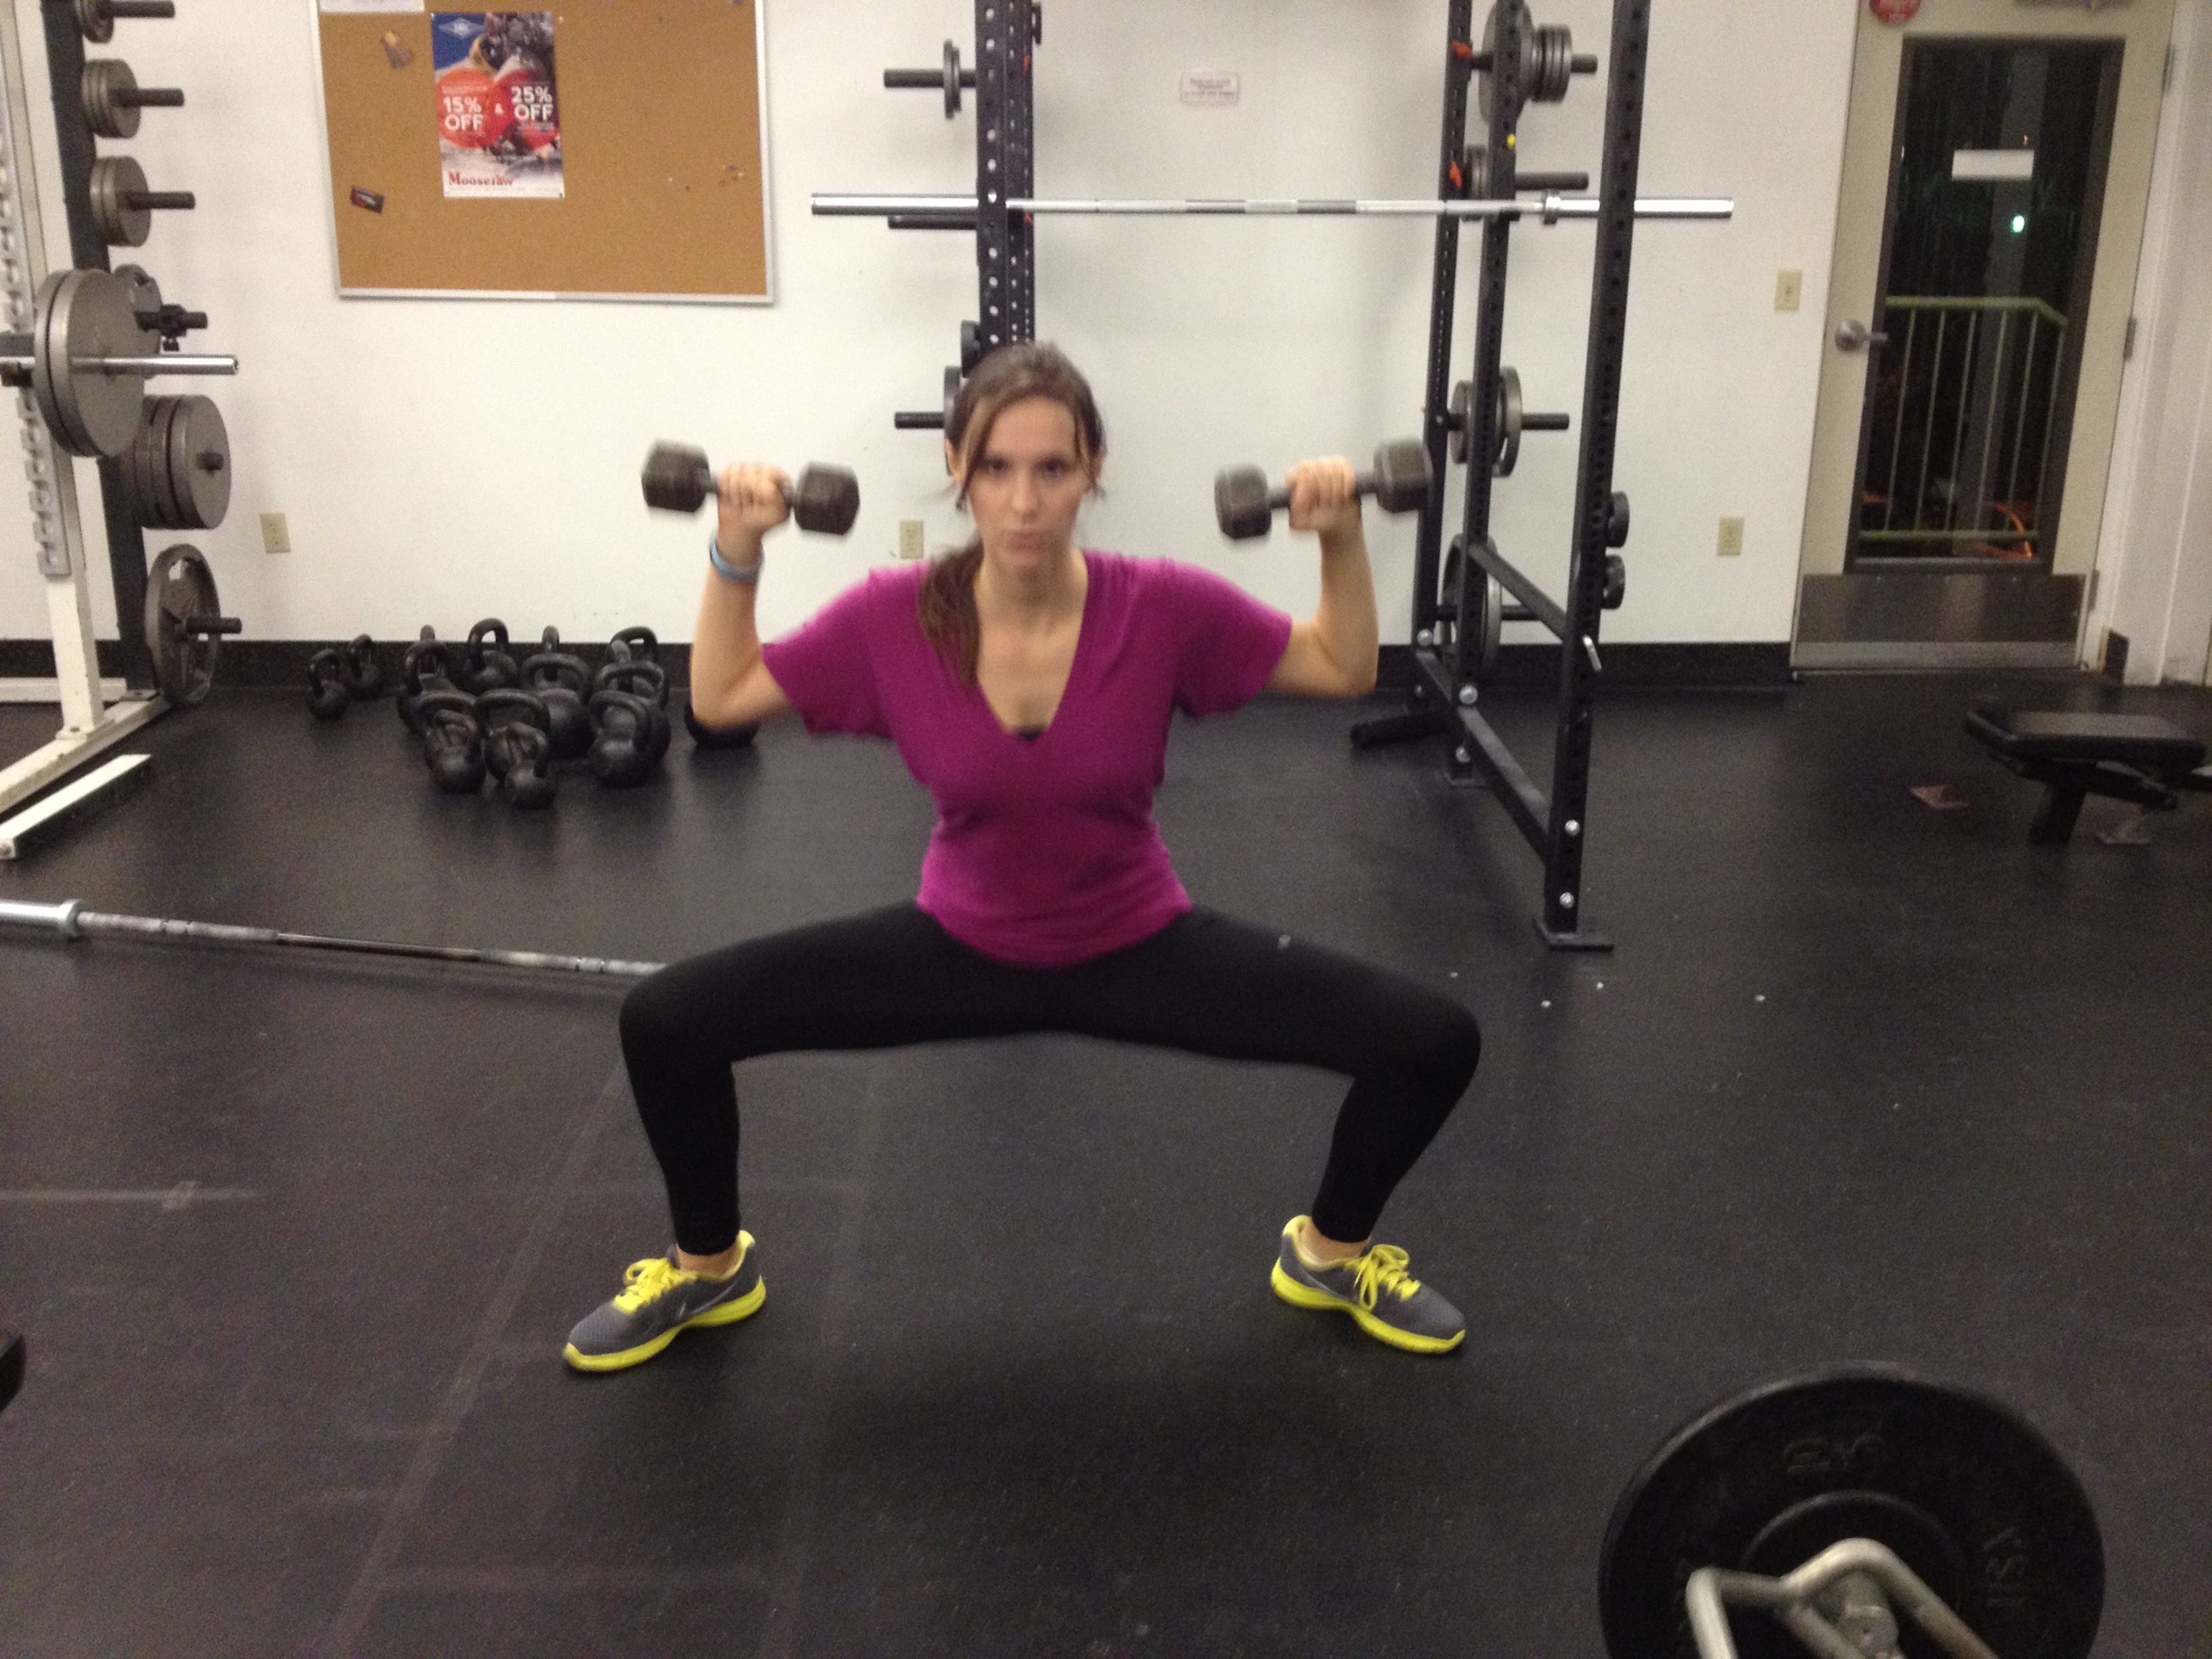 Here's me with weights, but they are unnecessary for all